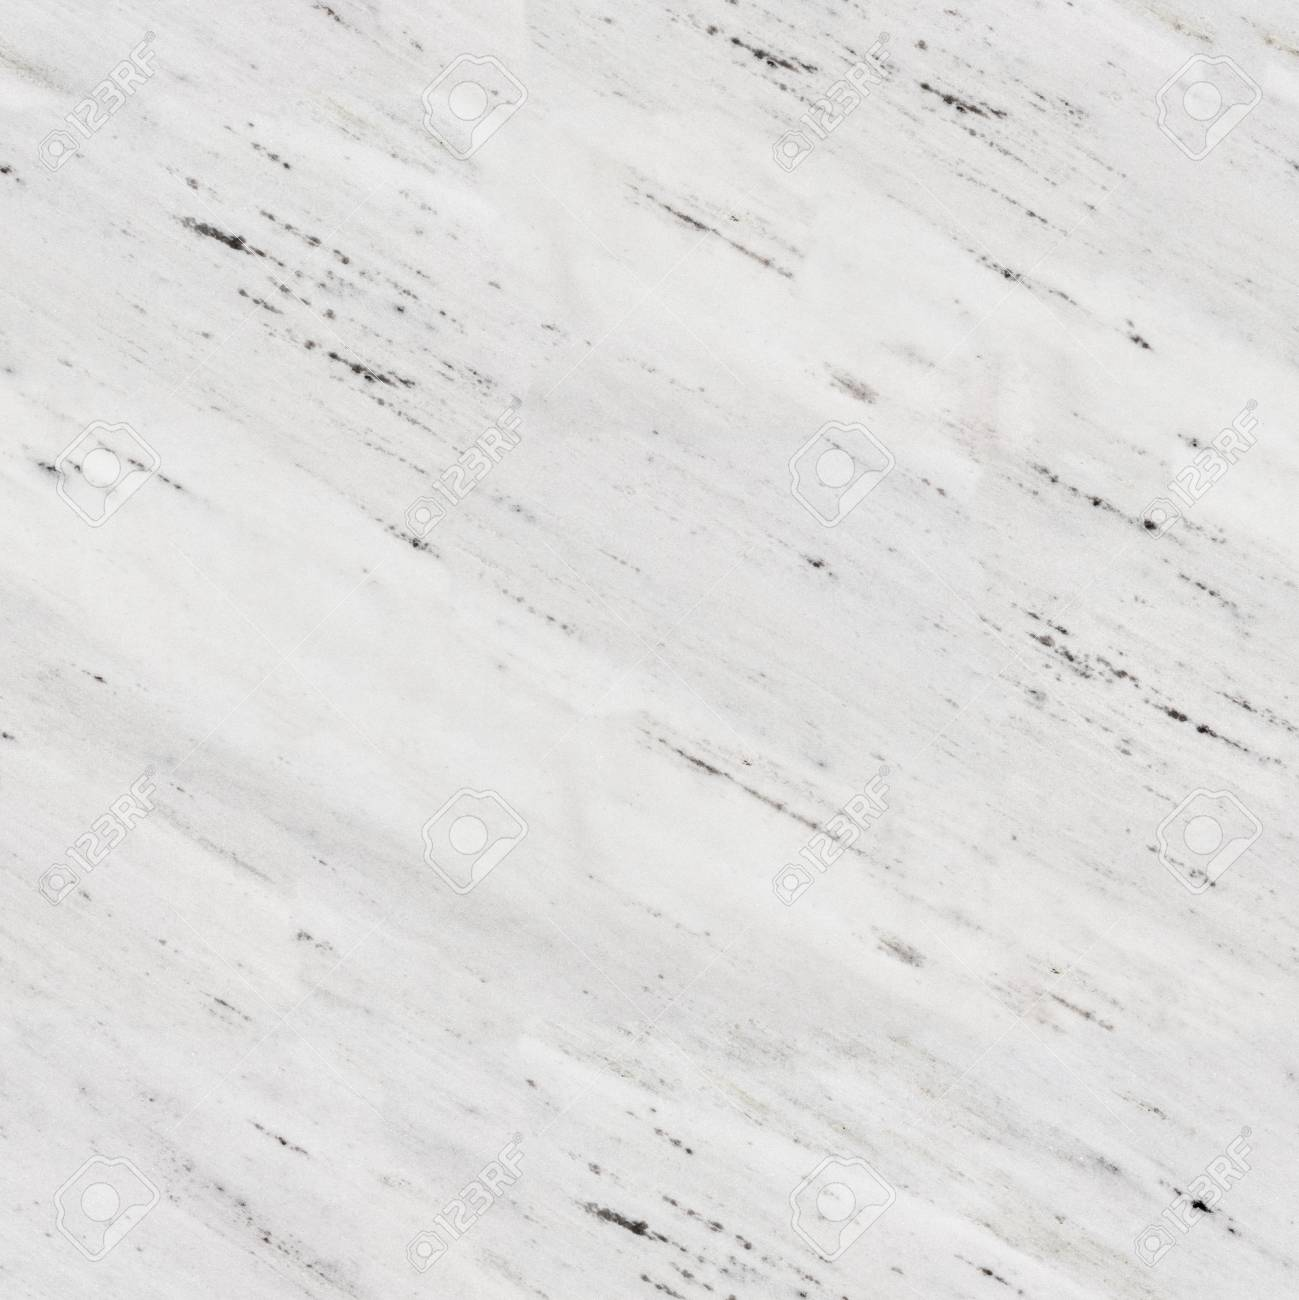 Close Up Of White Marble Texture Seamless Square Background Stock Photo Picture And Royalty Free Image Image 83571795